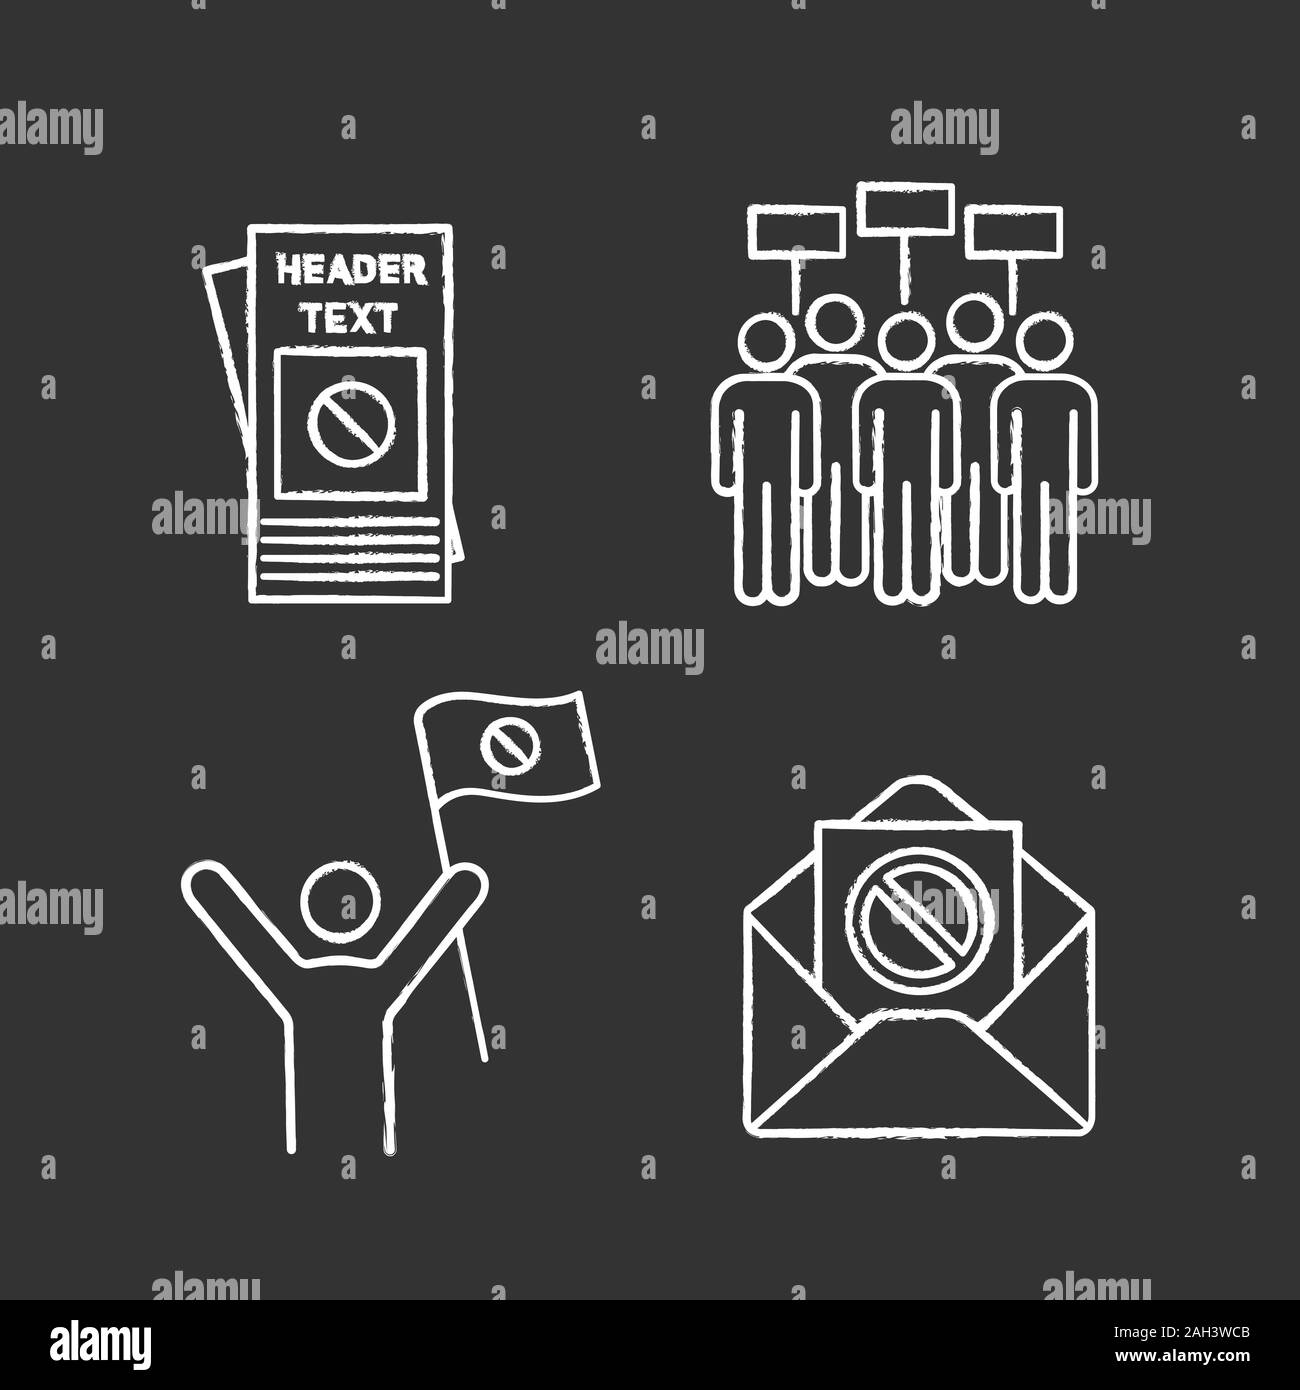 Protest action chalk icons set. Protester, meeting, protest email, leaflet. Isolated vector chalkboard illustrations Stock Vector